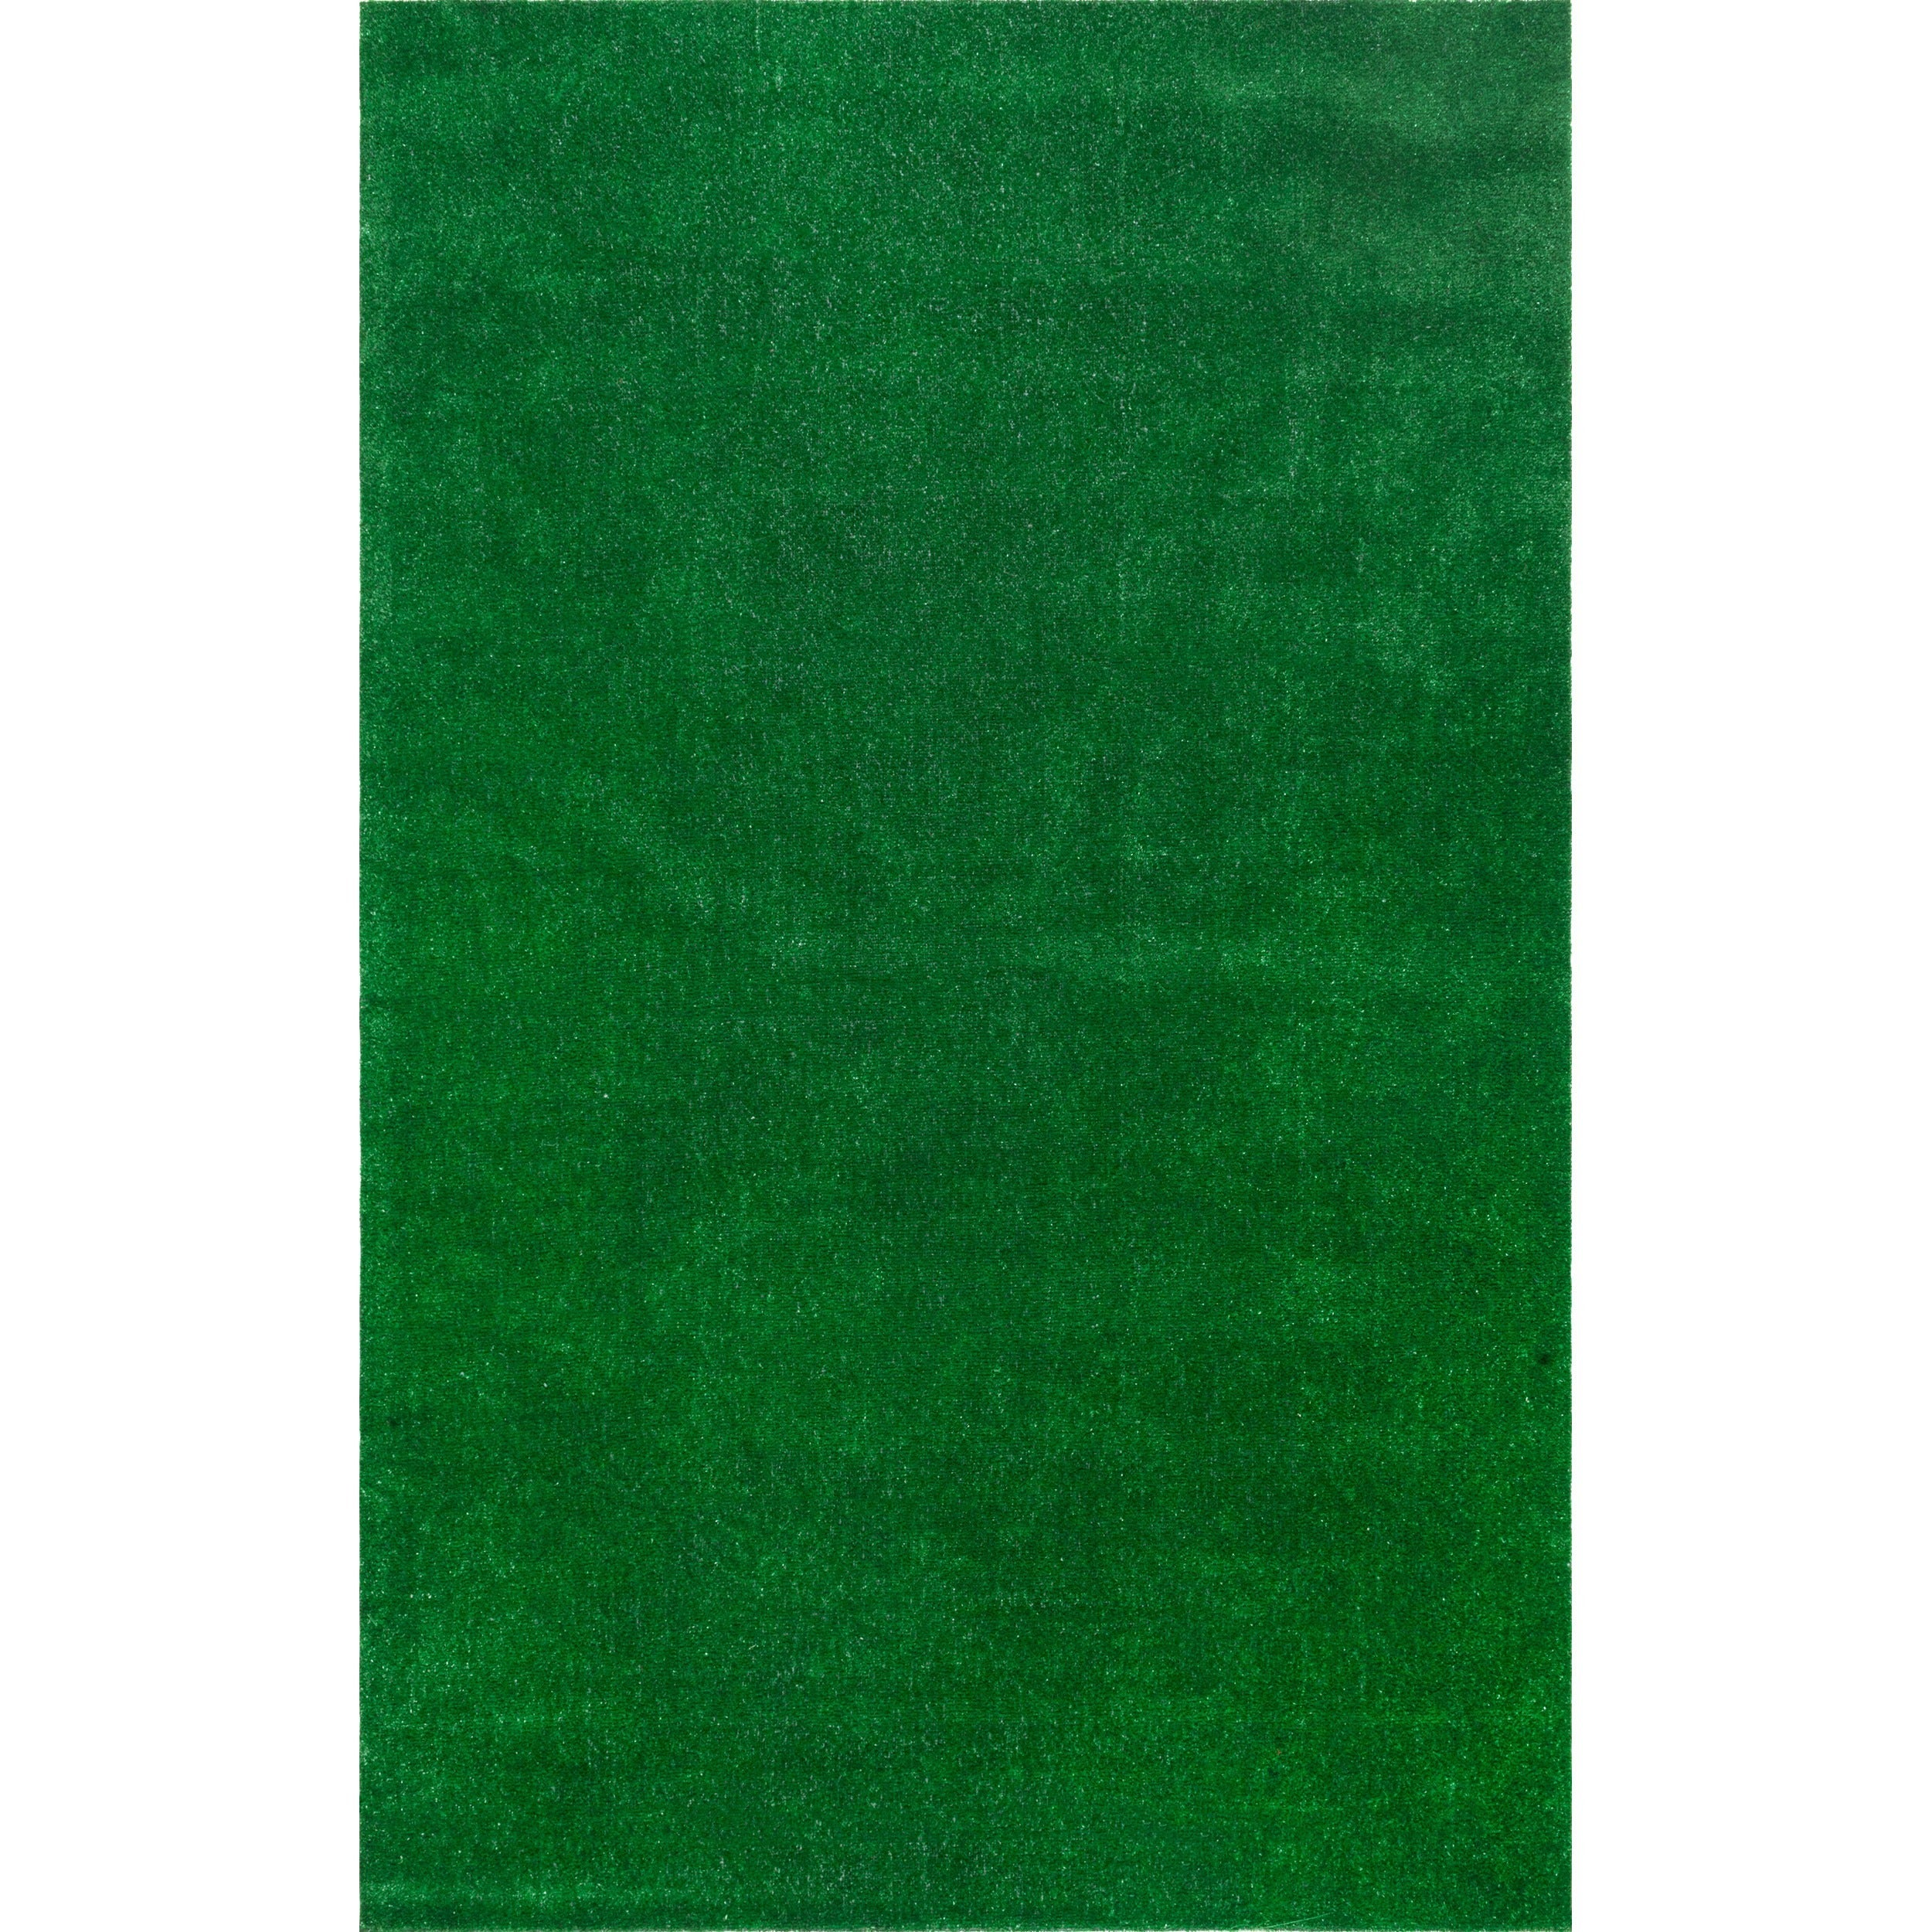 NuLOOM Artificial Grass Outdoor Lawn Turf Green Patio Rug (5u0027 X 8u0027)   Free  Shipping Today   Overstock   17513439